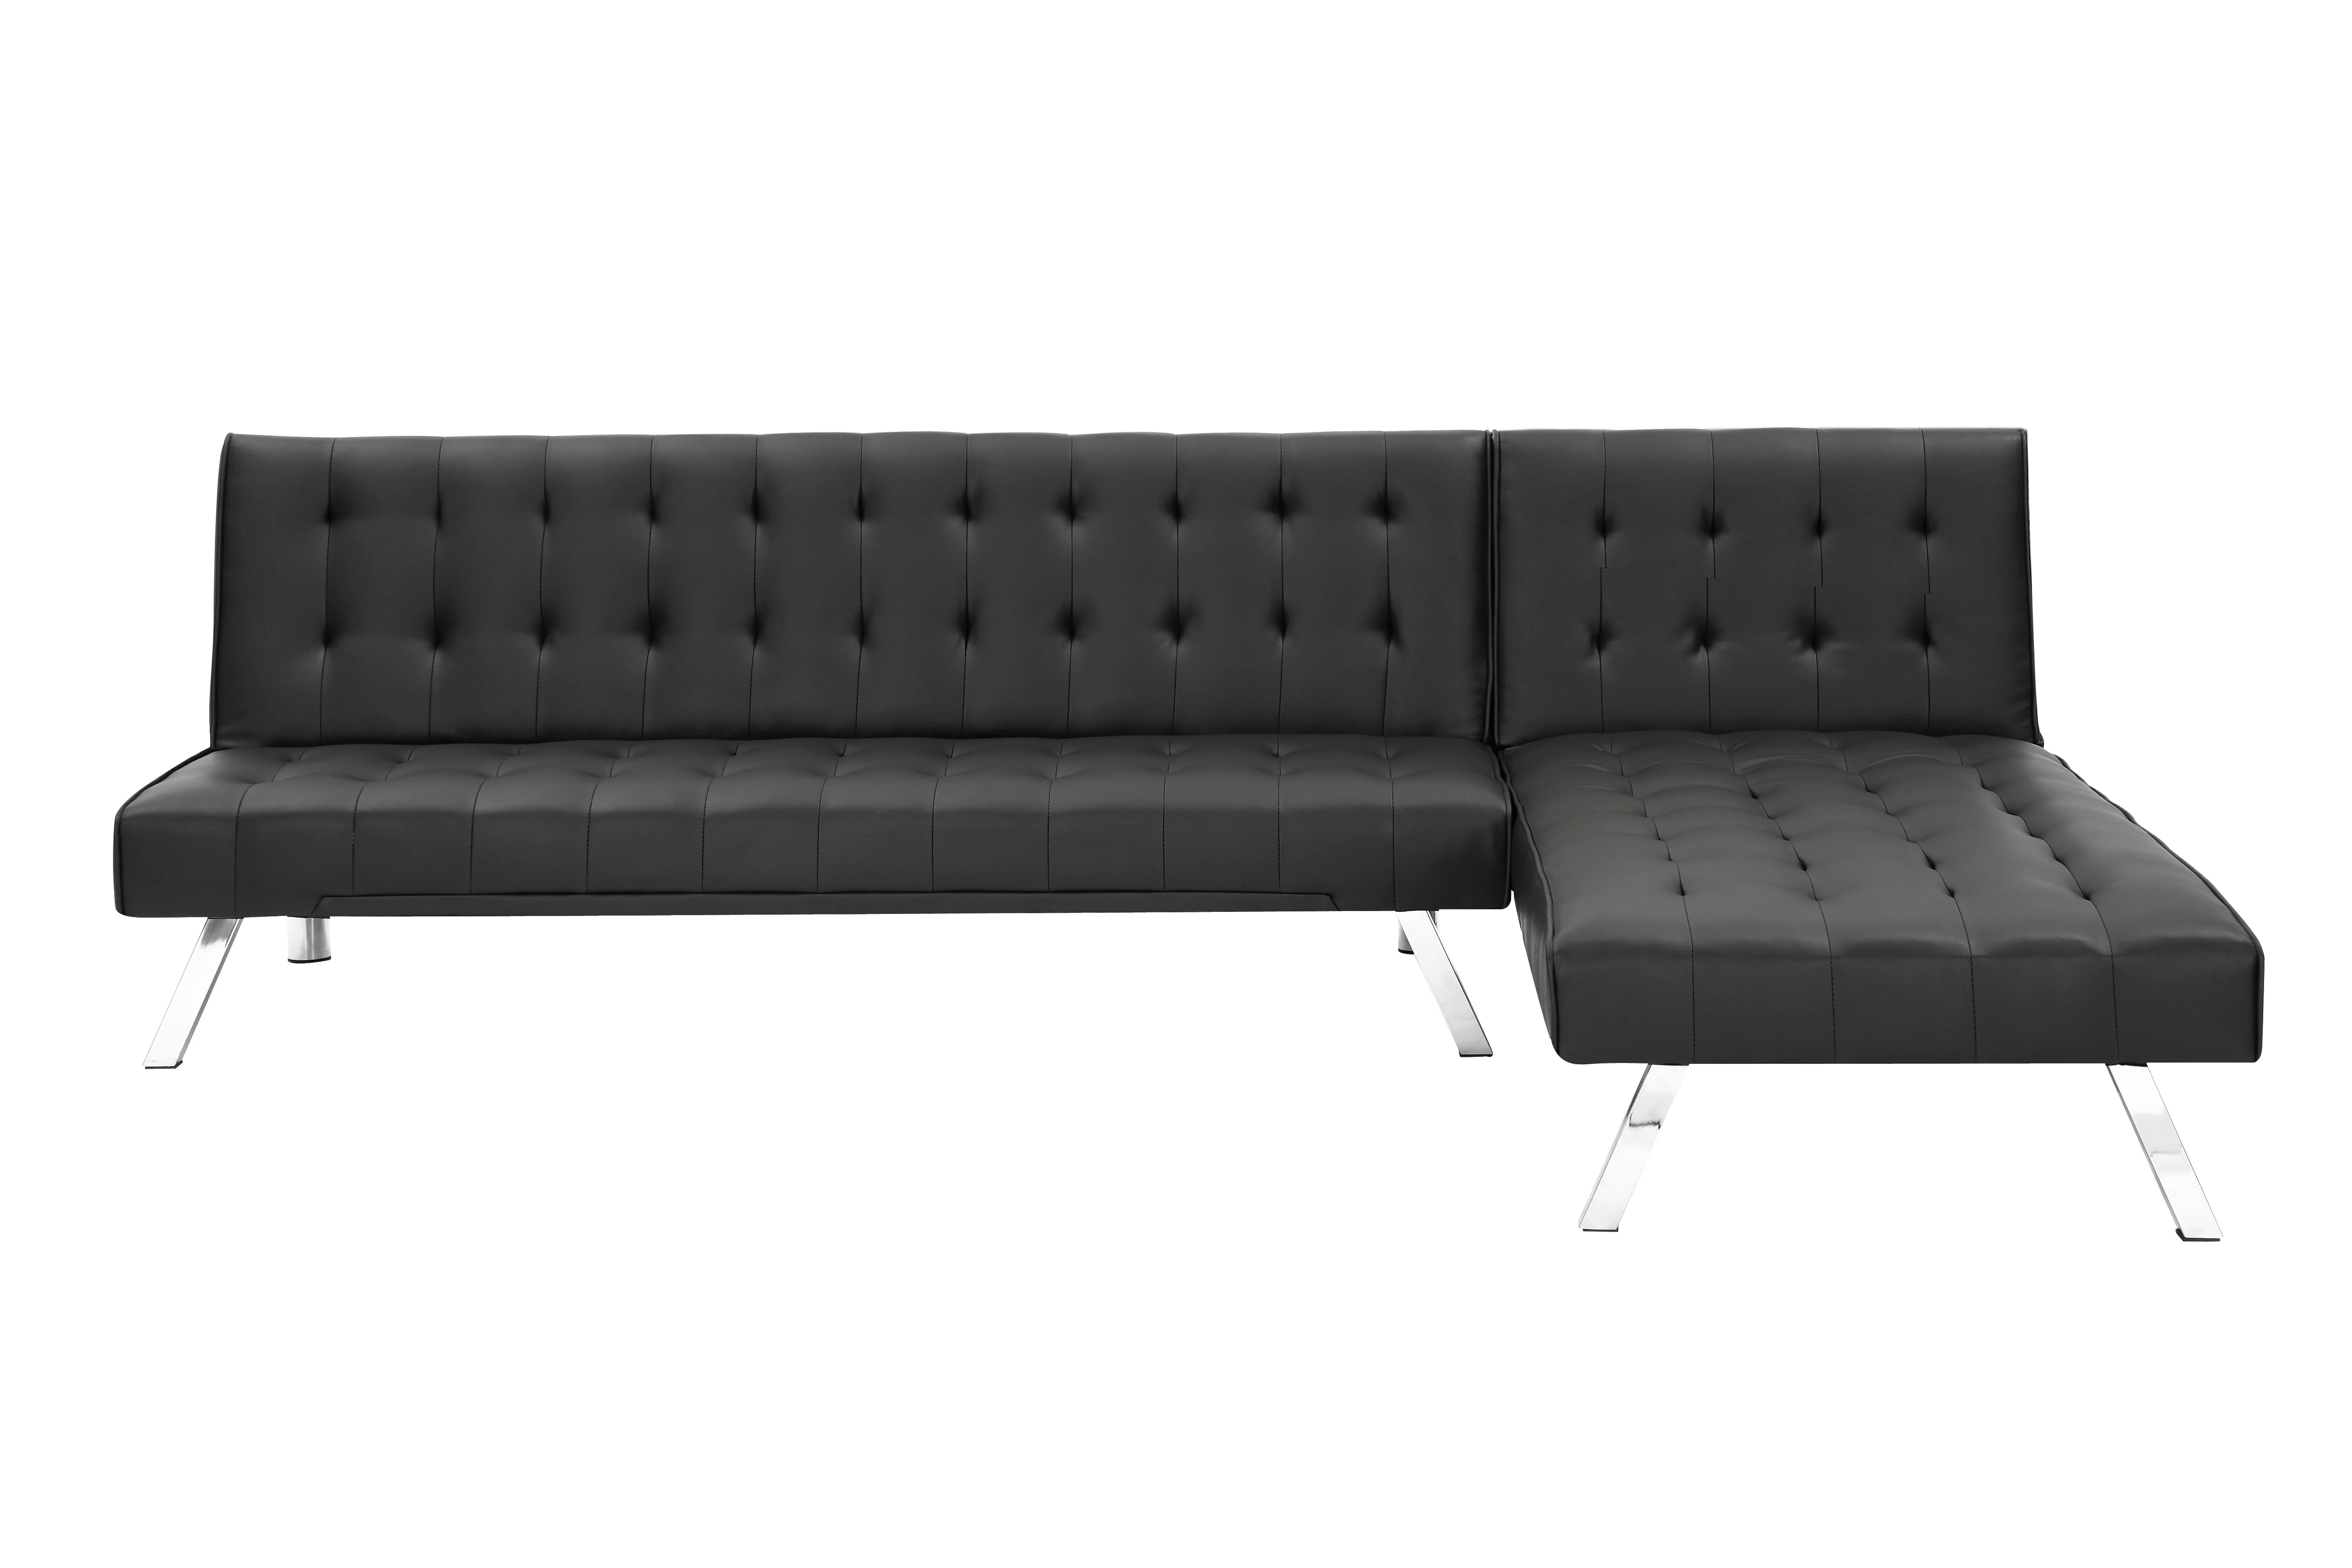 reversible black soft pu leather sofa with metal legs and hardwood frame mid century black pu leather couch tufted sofa bed with chaise lounge for living room 300lbs black s8891 walmart com